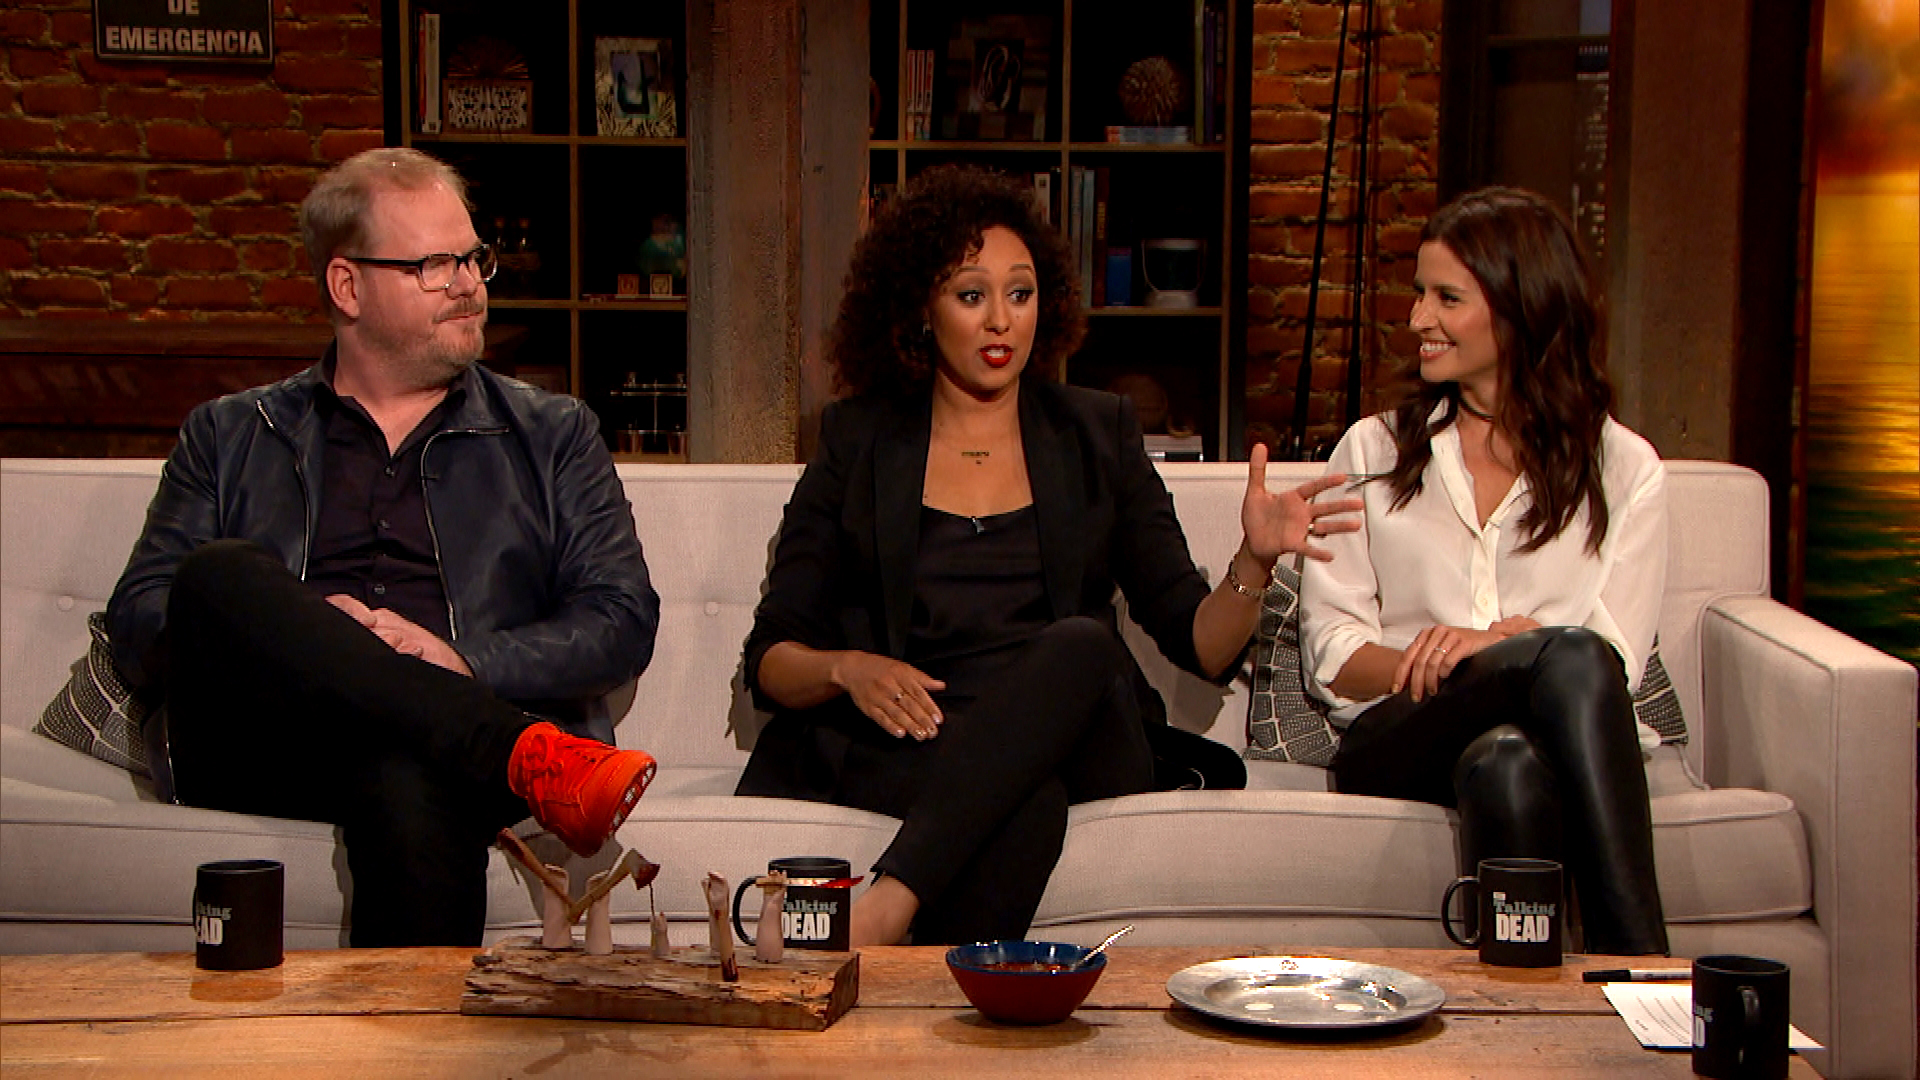 The Talking Dead6